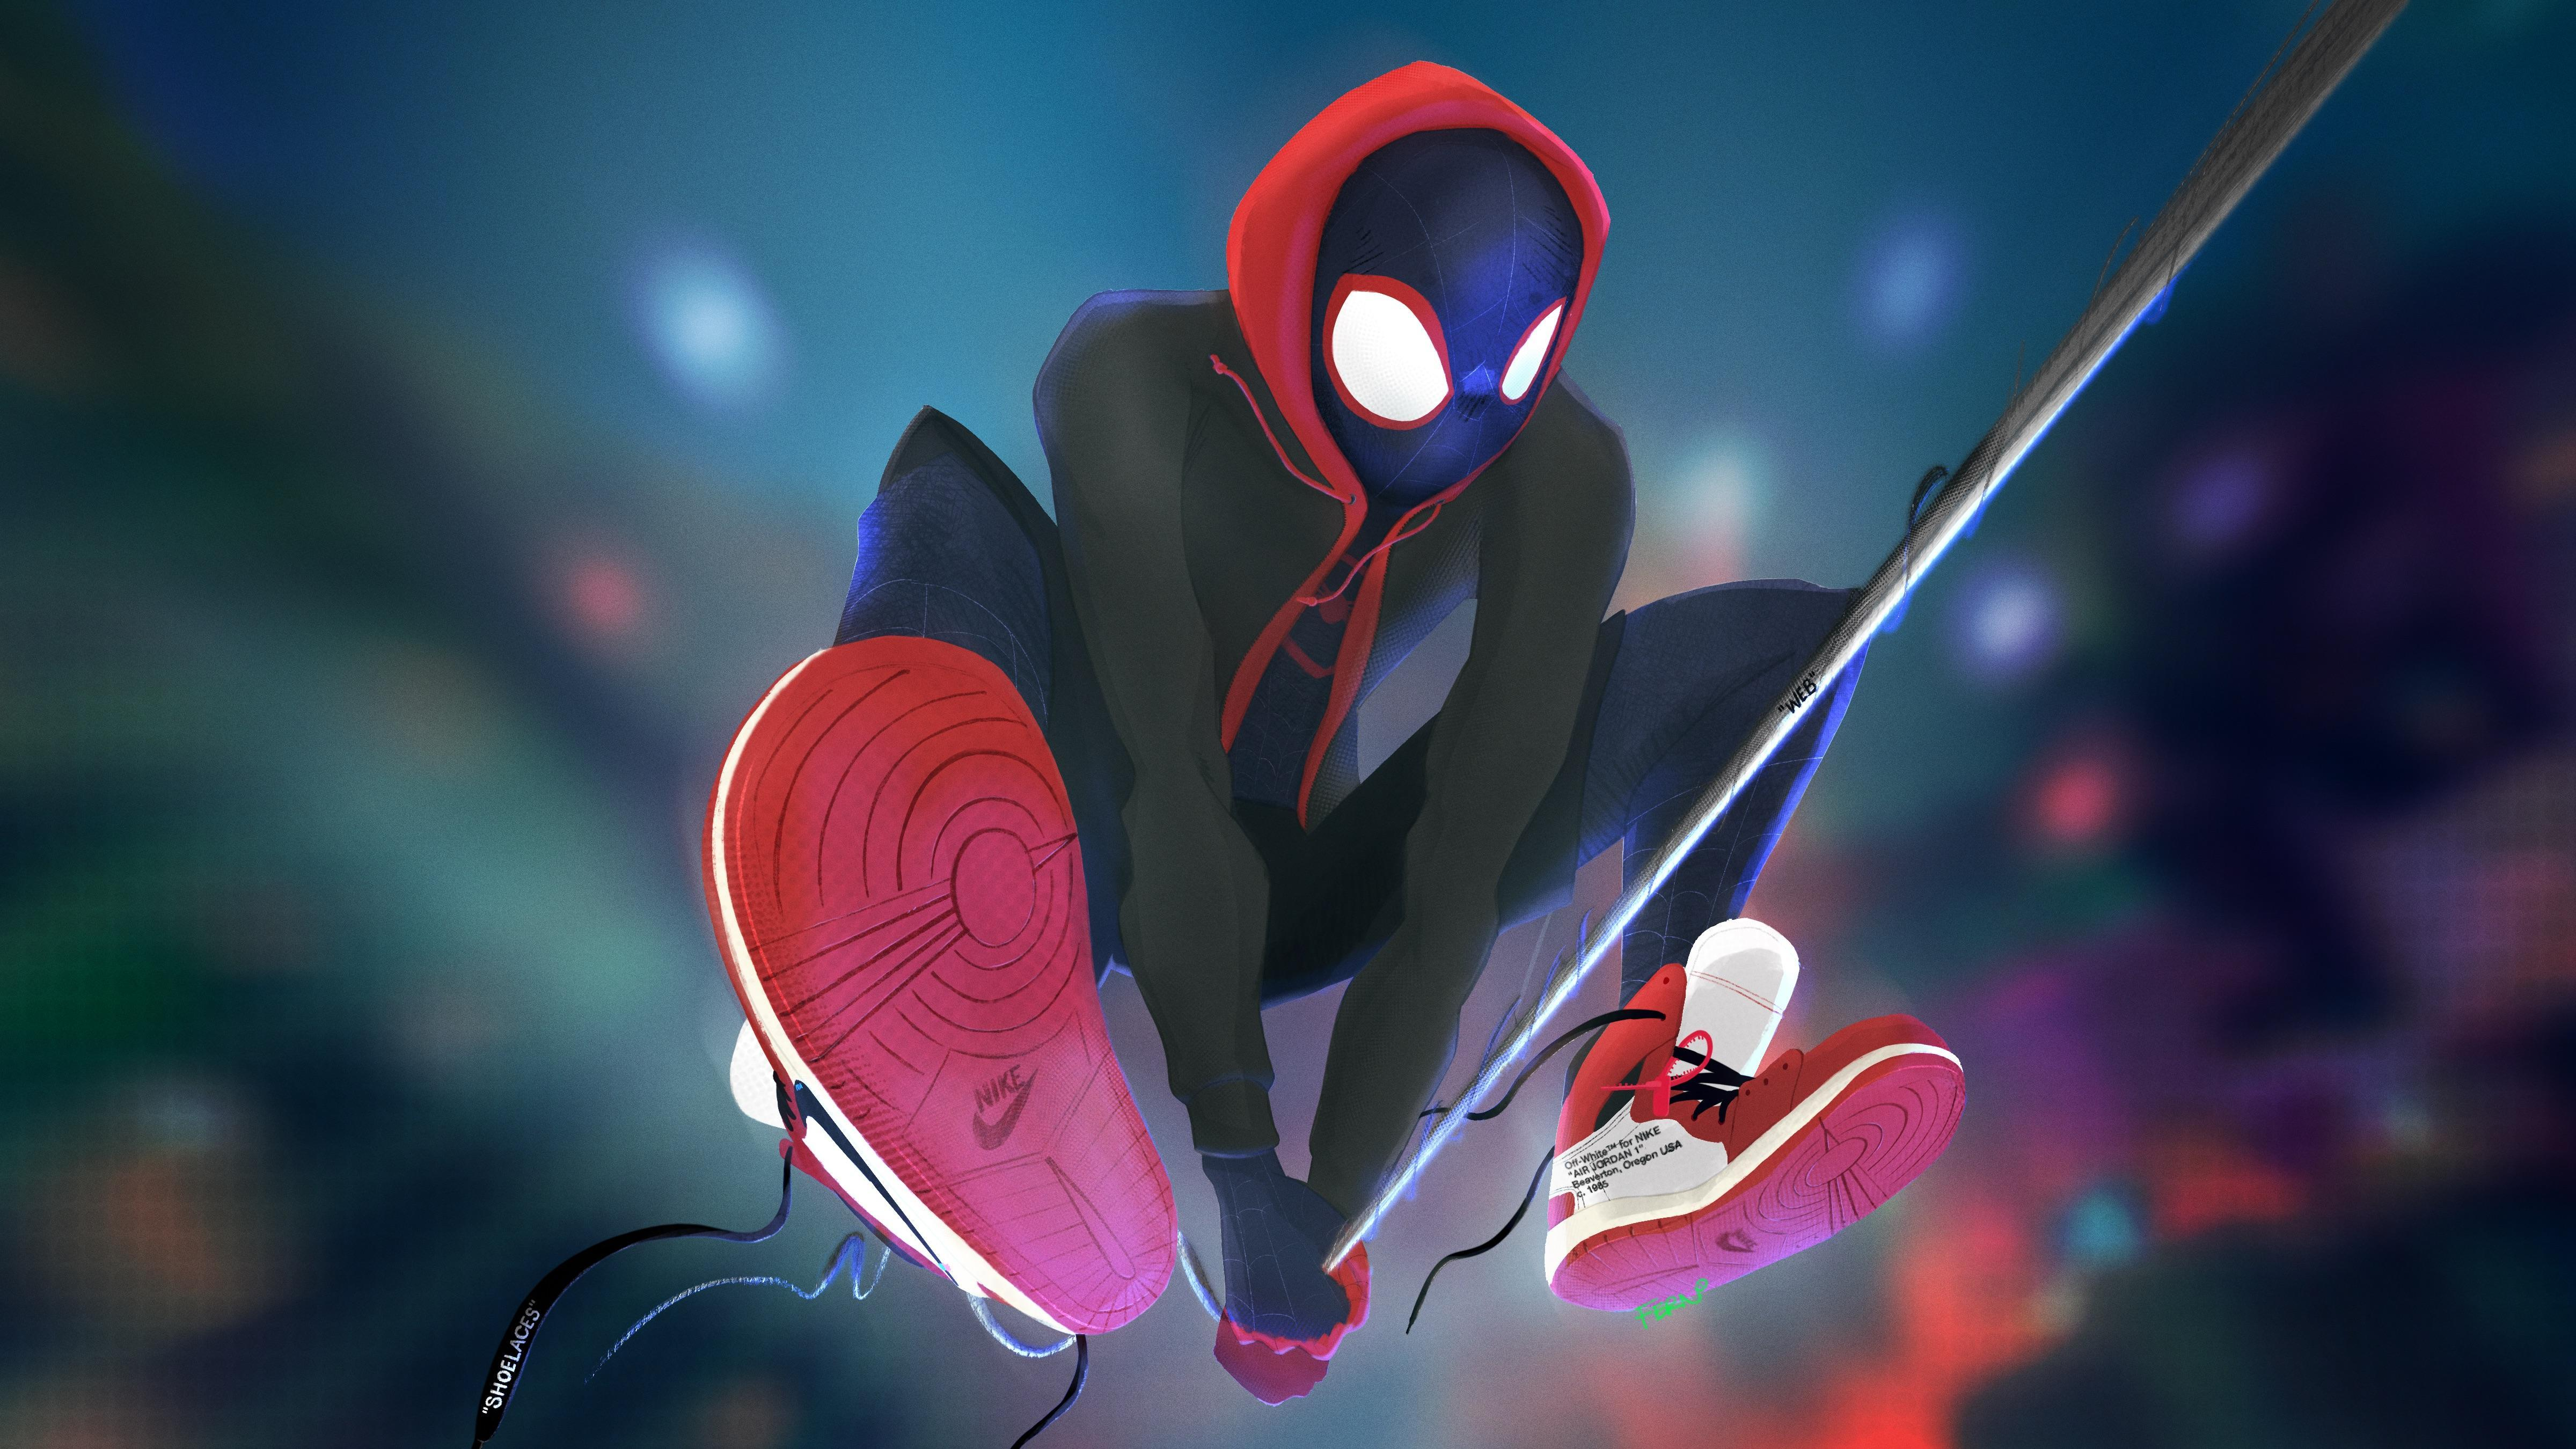 1920x1080 Spider Verse 1080p Laptop Full Hd Wallpaper Hd Movies 4k Wallpapers Images Photos And Background